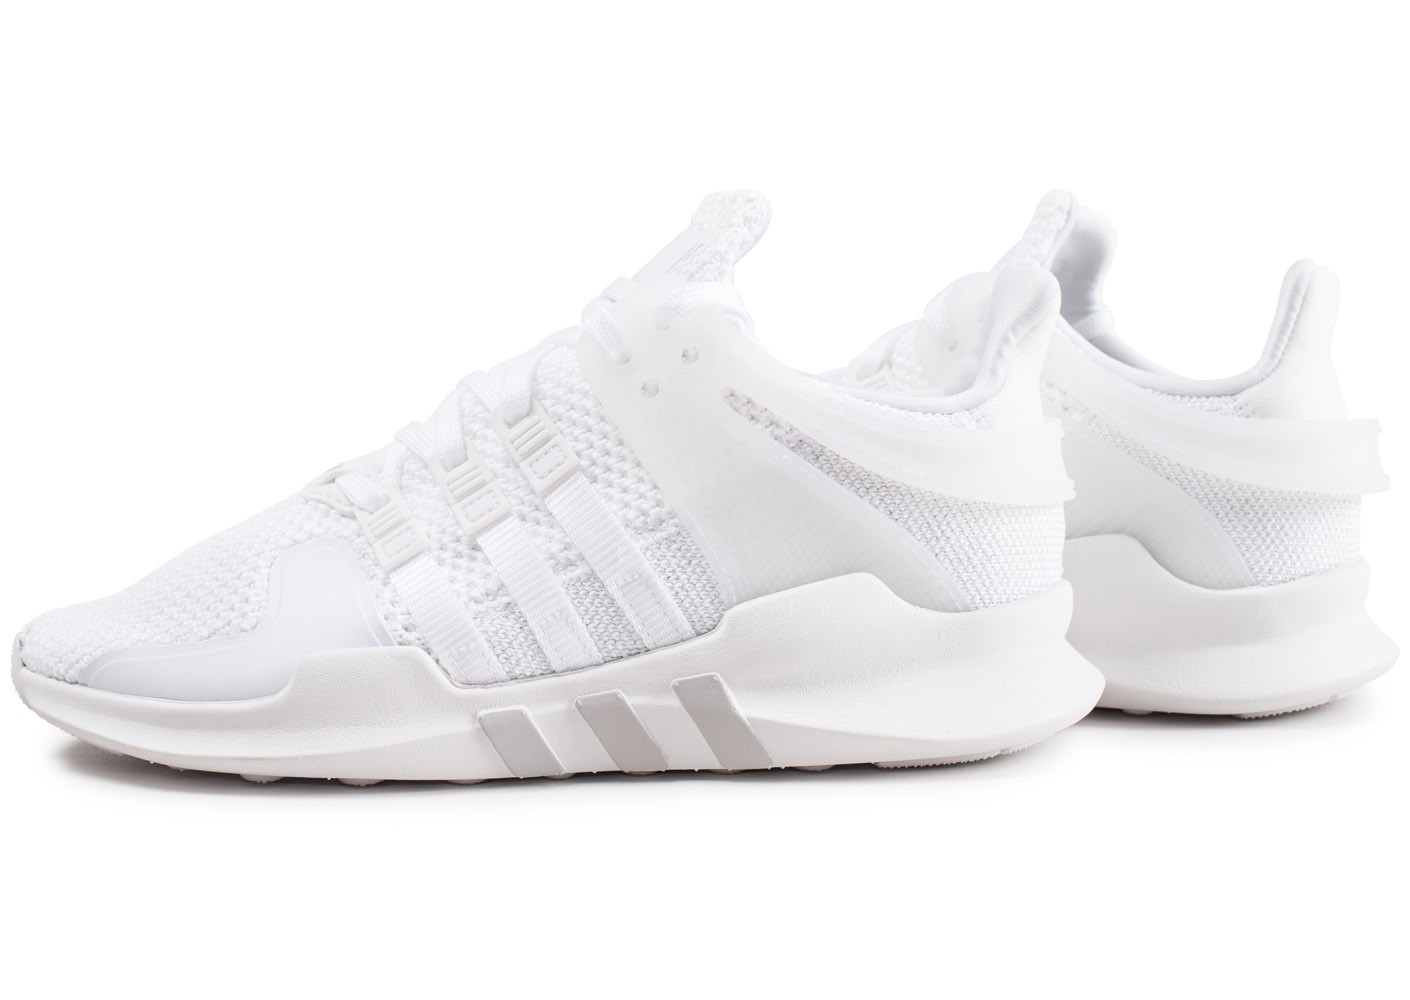 adidas eqt support adv femme blanche